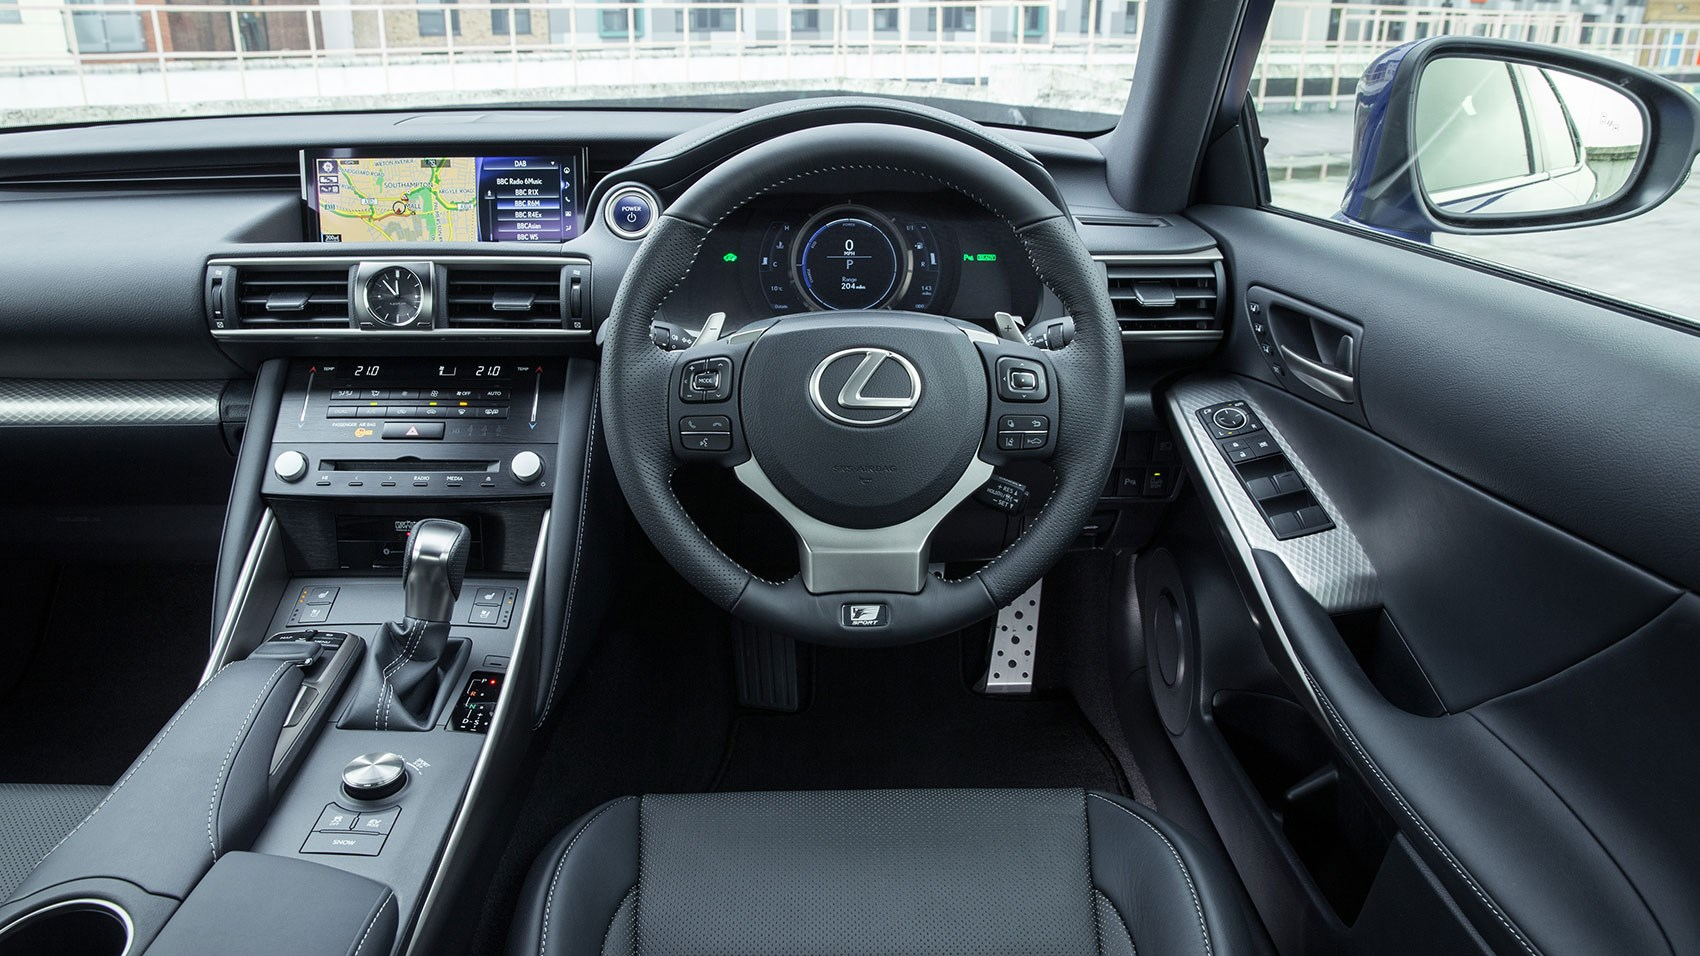 Lexus IS300h 2017 interior